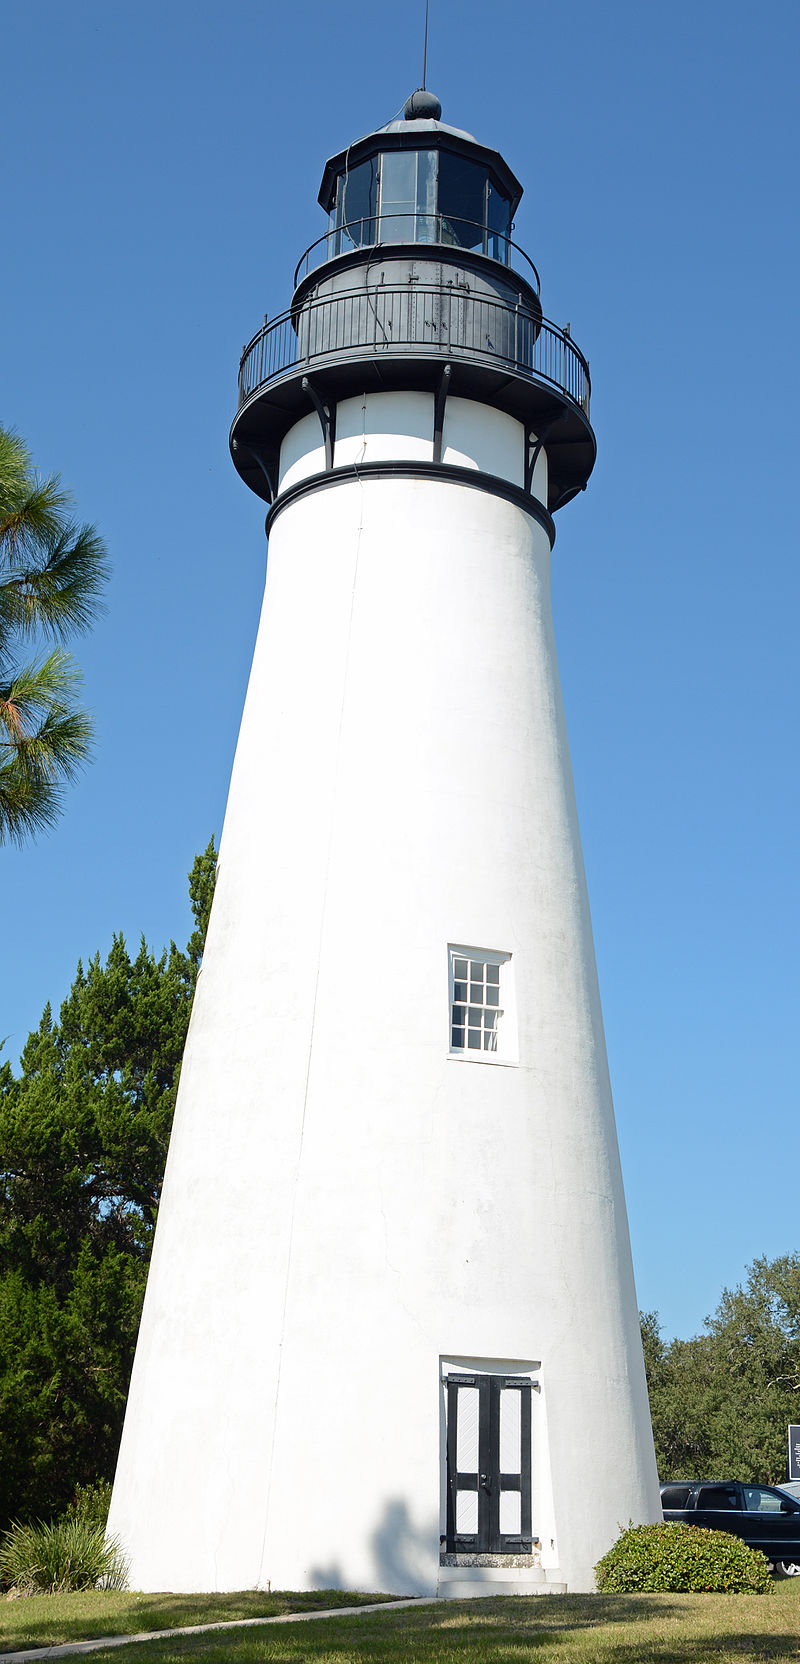 Amelia Island Lighthouse and building, FL, US (15).jpg